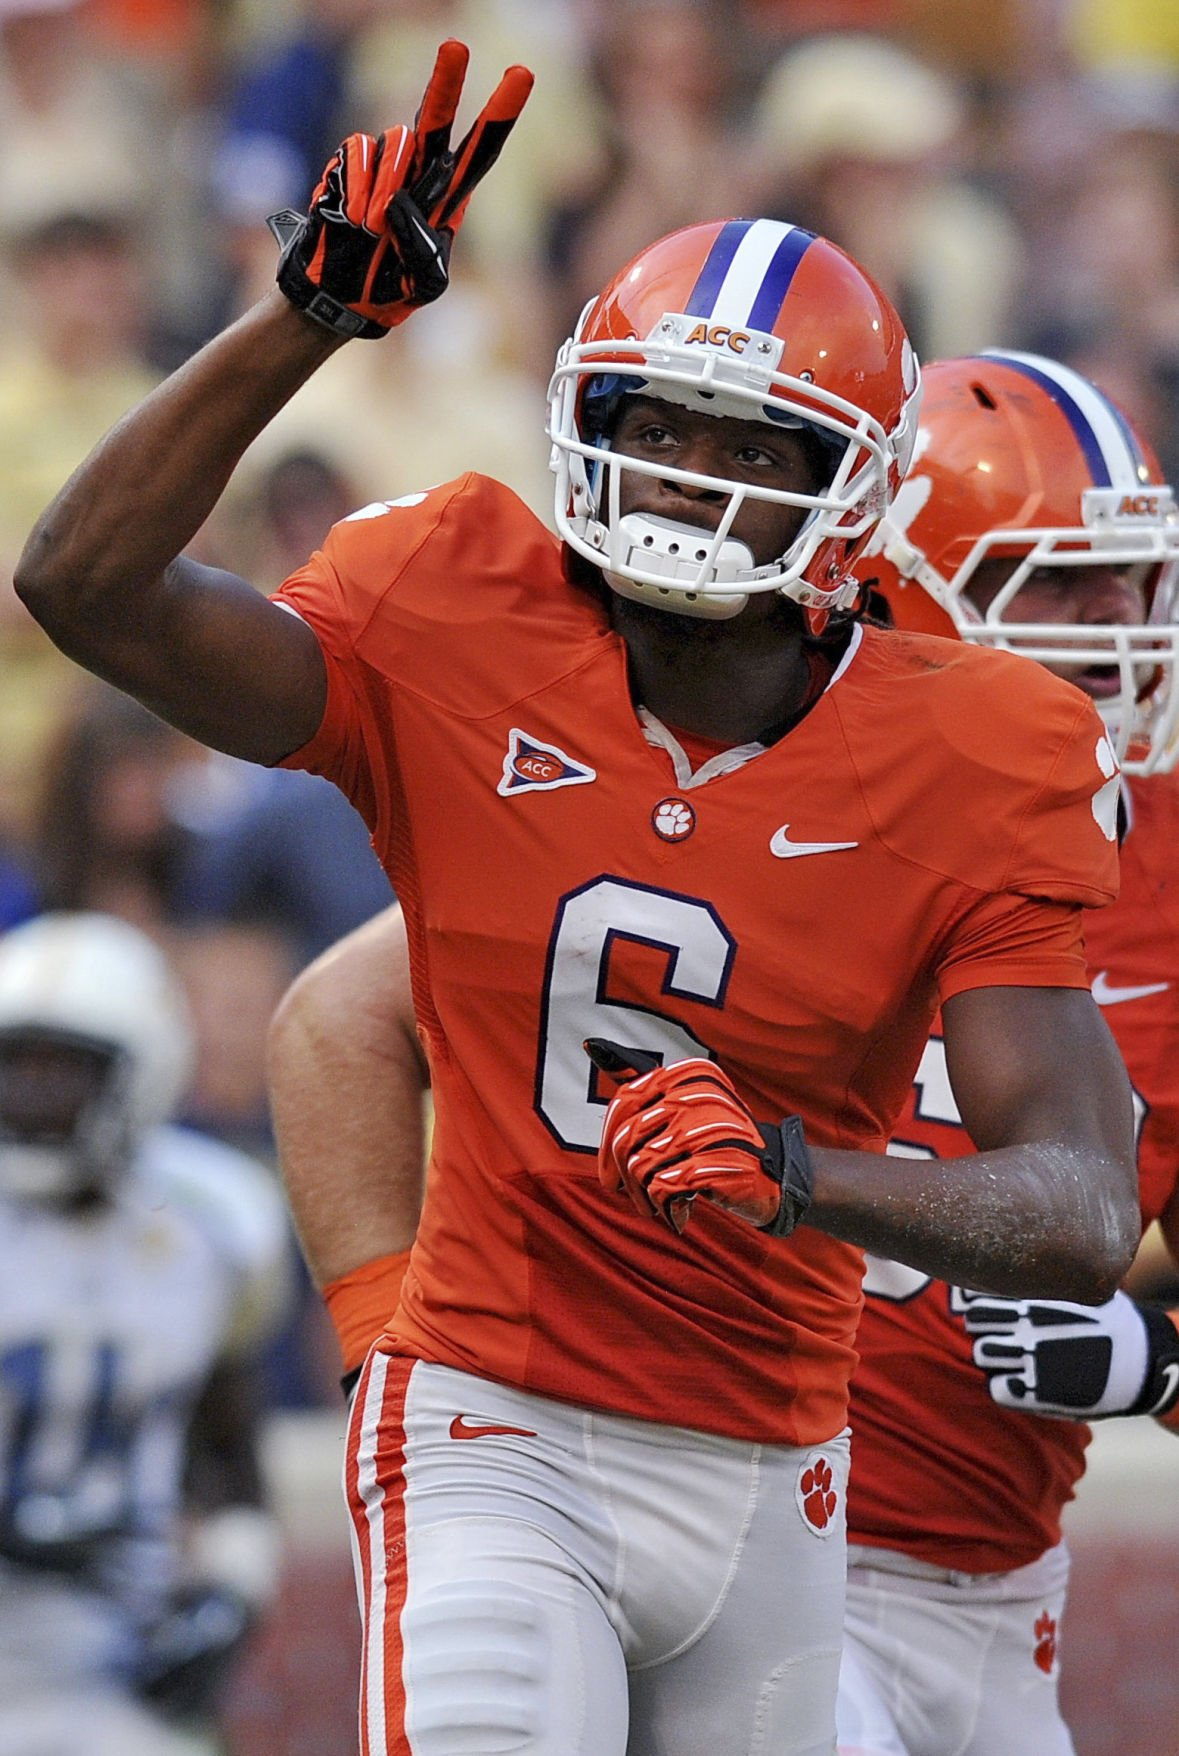 Clemson set up for a surge in second half